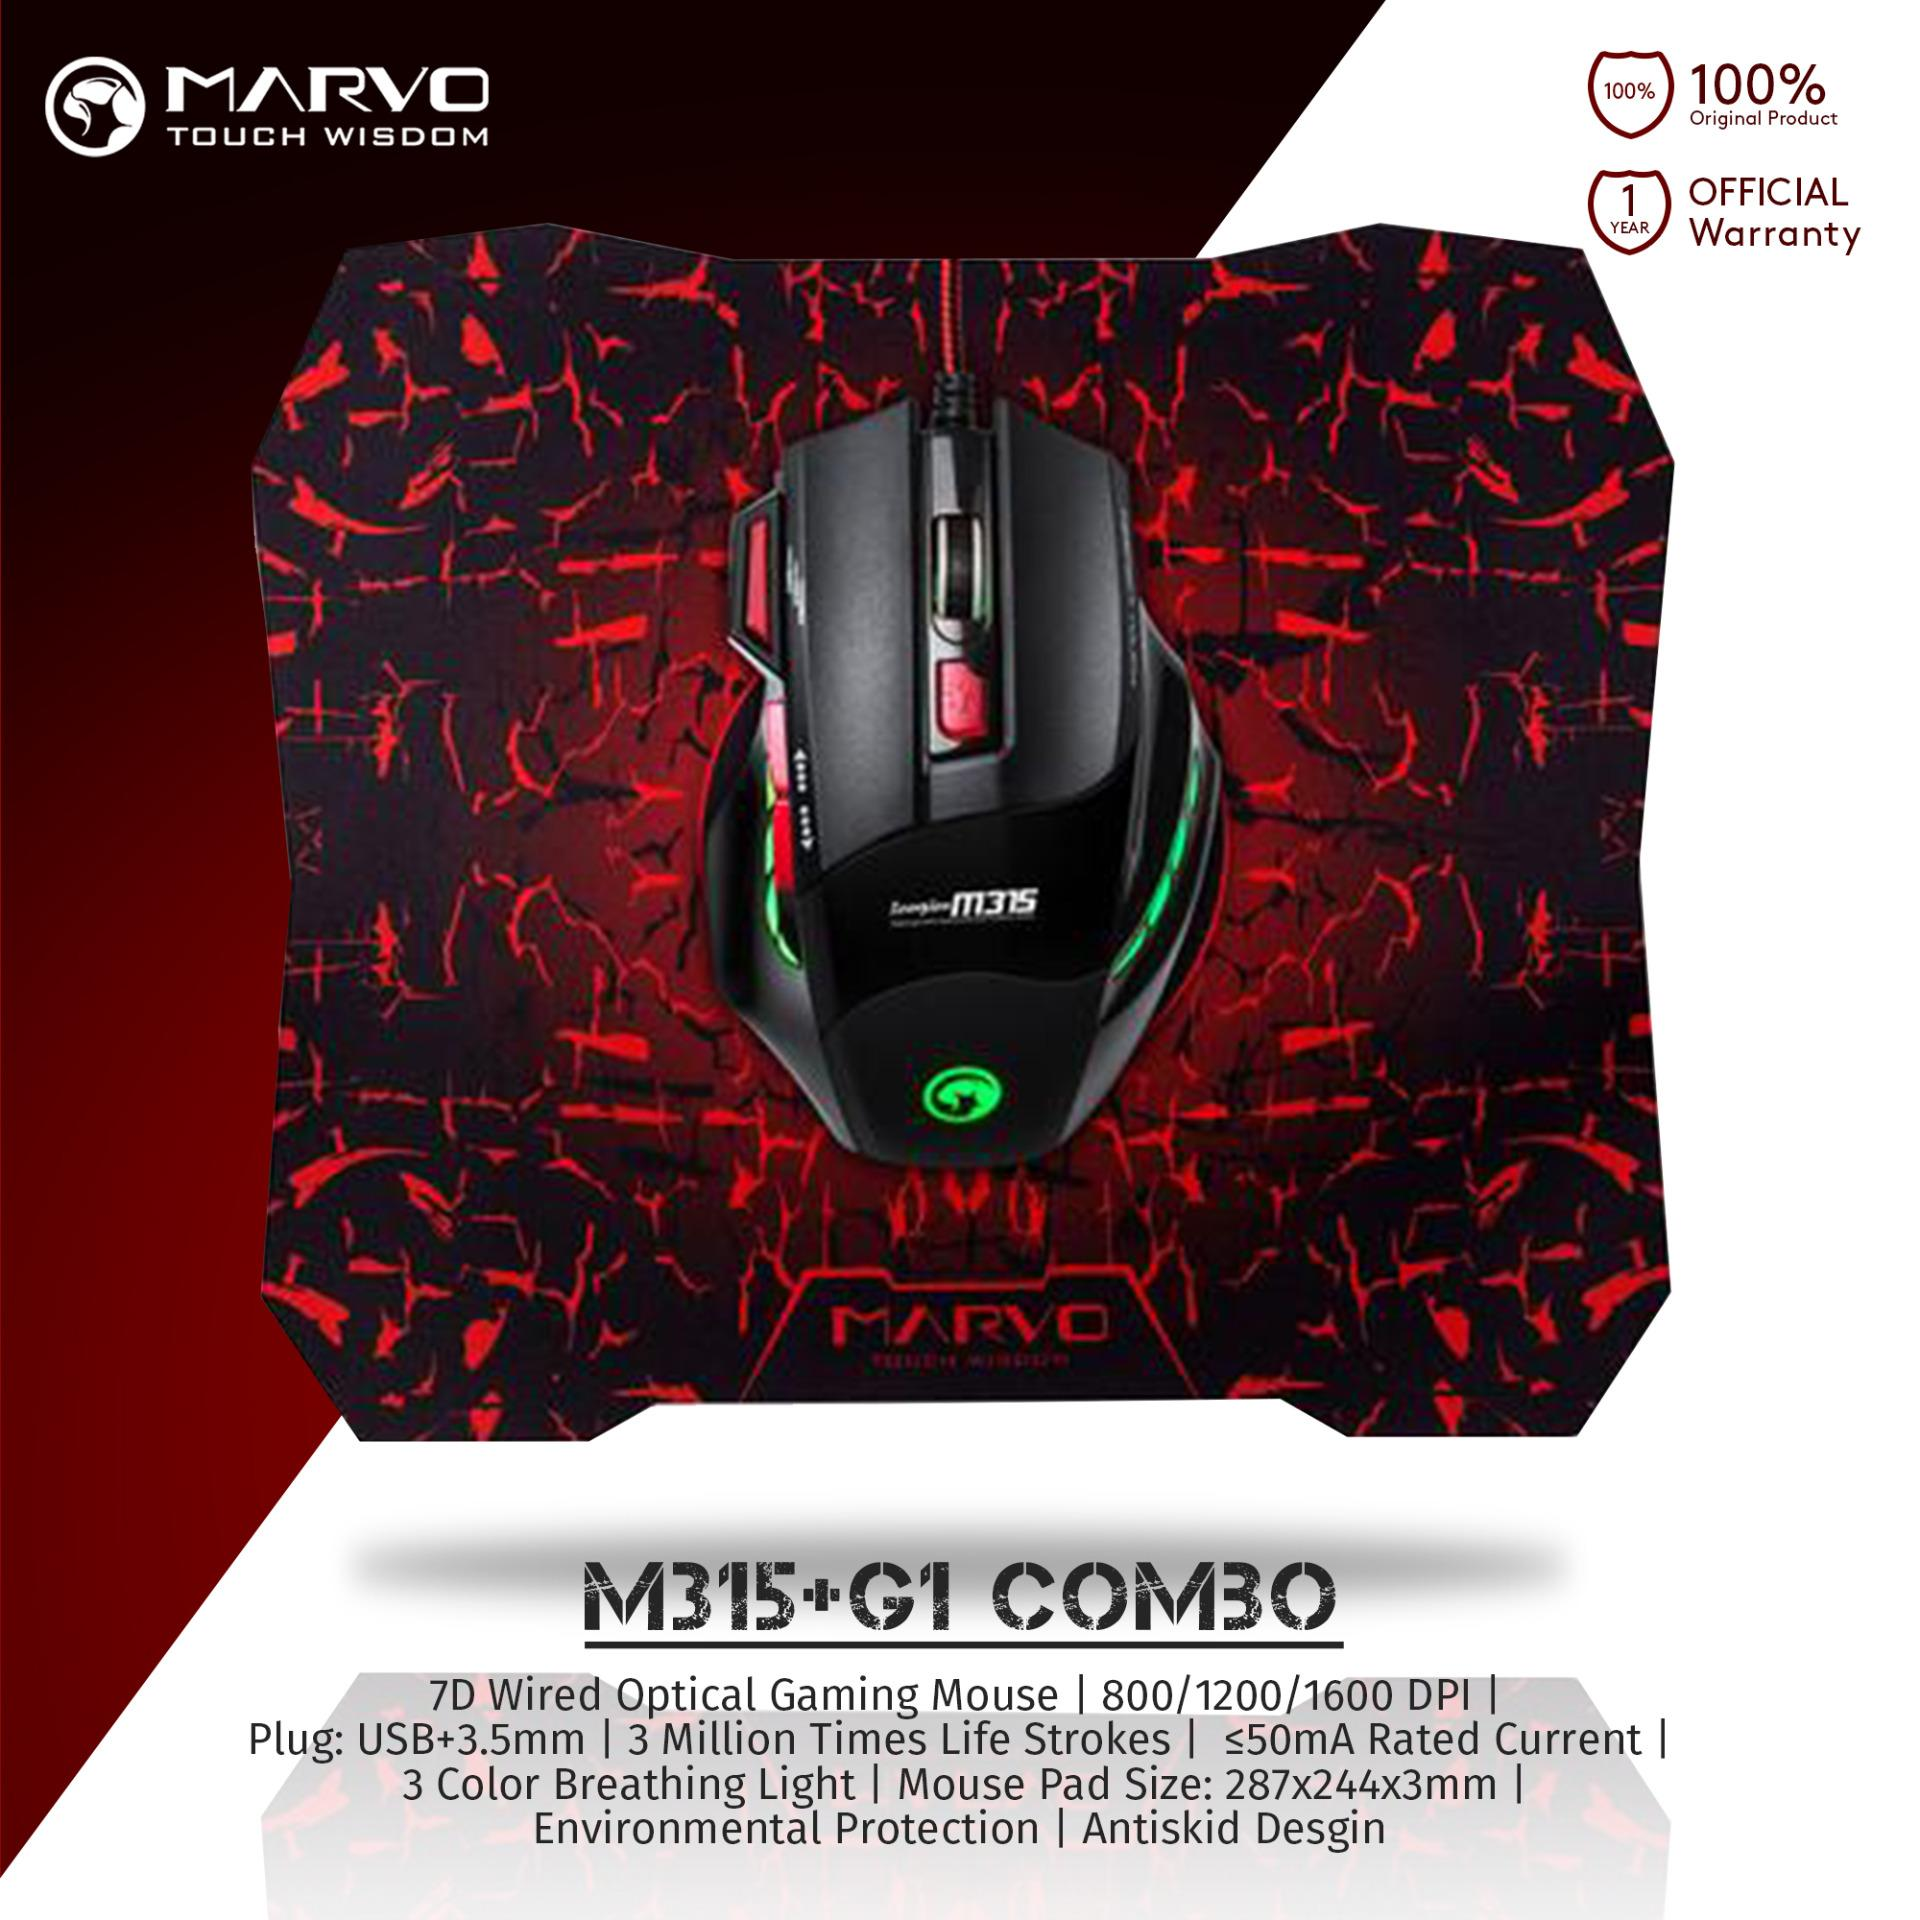 Marvo M315 & Mouse Pad G1 Combo Gaming Mouse - Hitam